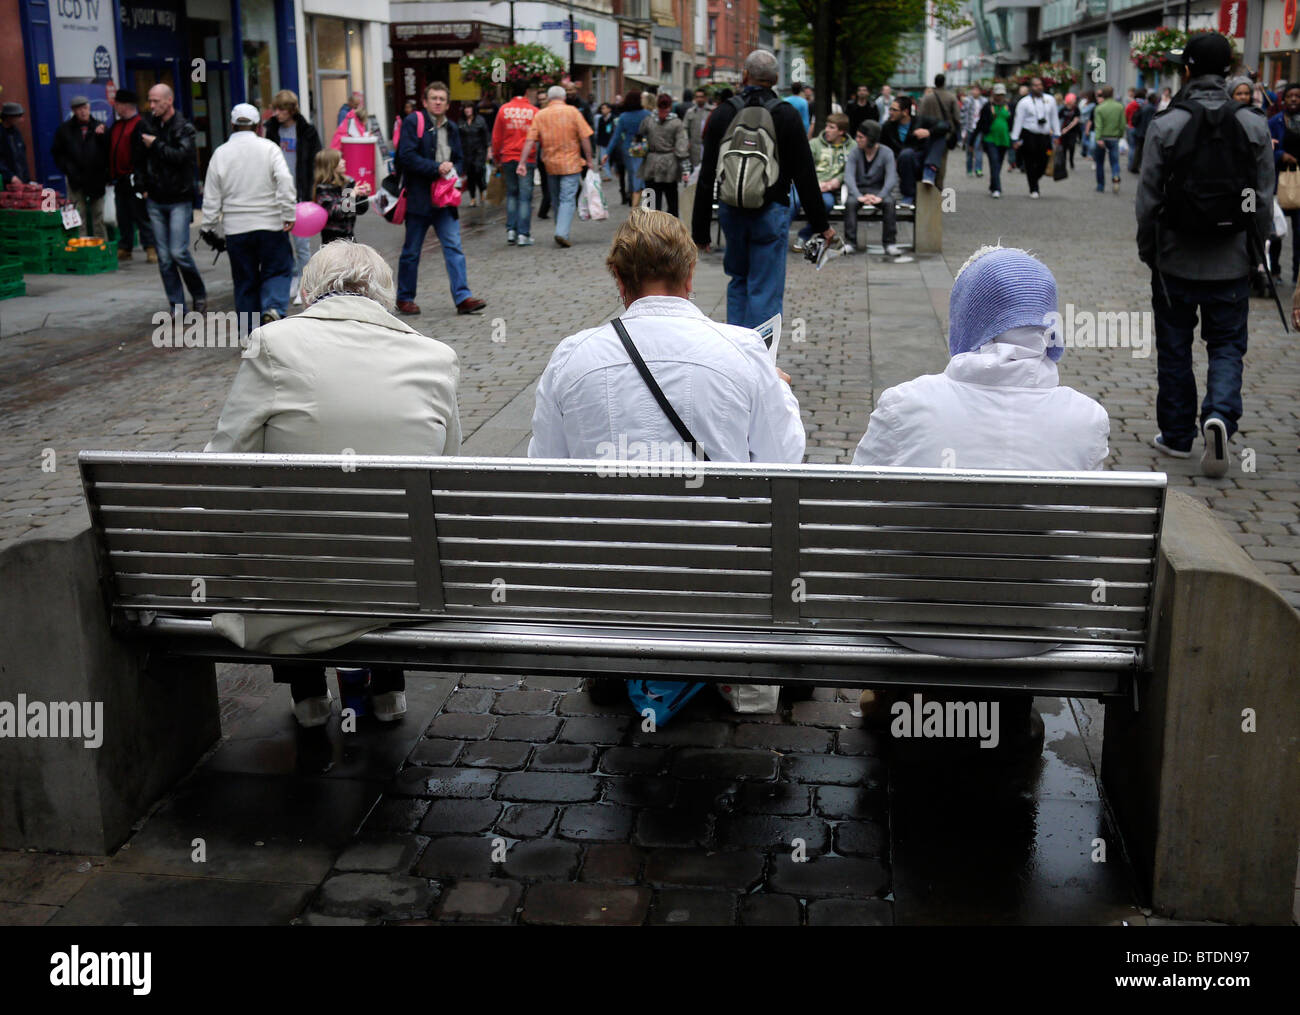 Three ladies seated on Market Street in Manchester City Centre UK - Stock Image